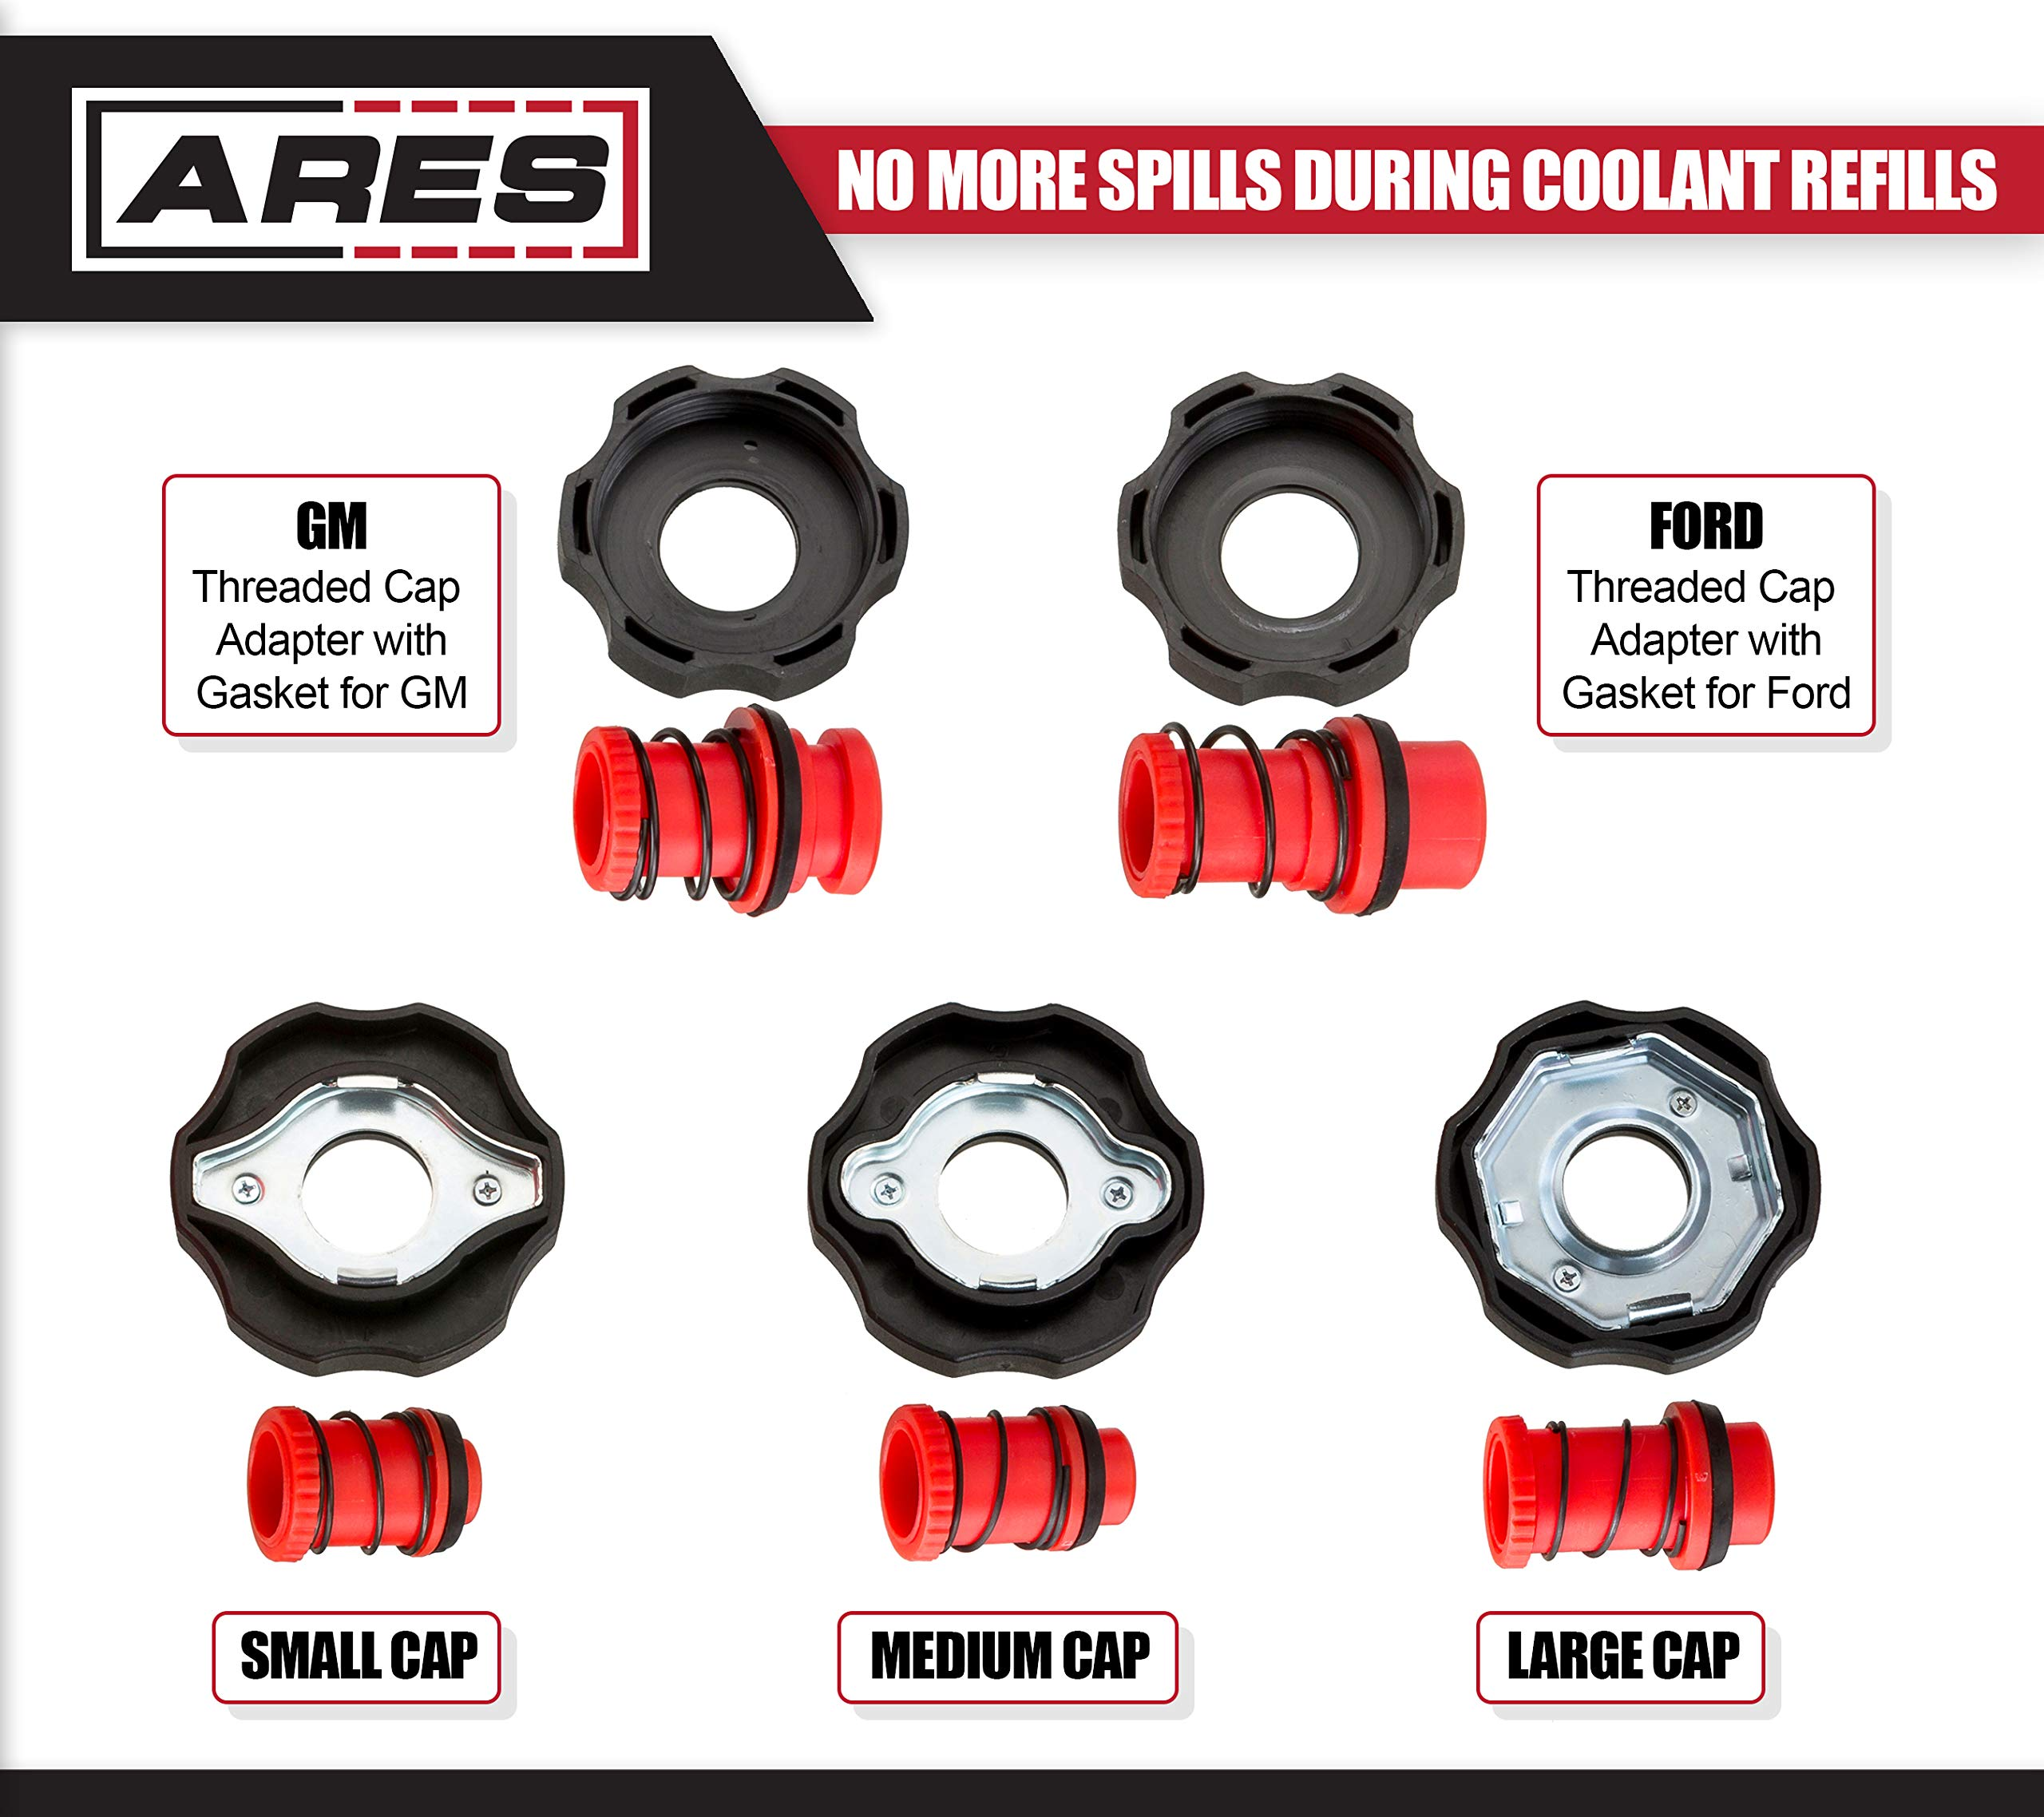 ARES 71502 | Spill Proof Coolant Filling Kit | Eliminates Trapped Air Pockets and Squeaky Belts Due to Overflow by ARES (Image #5)